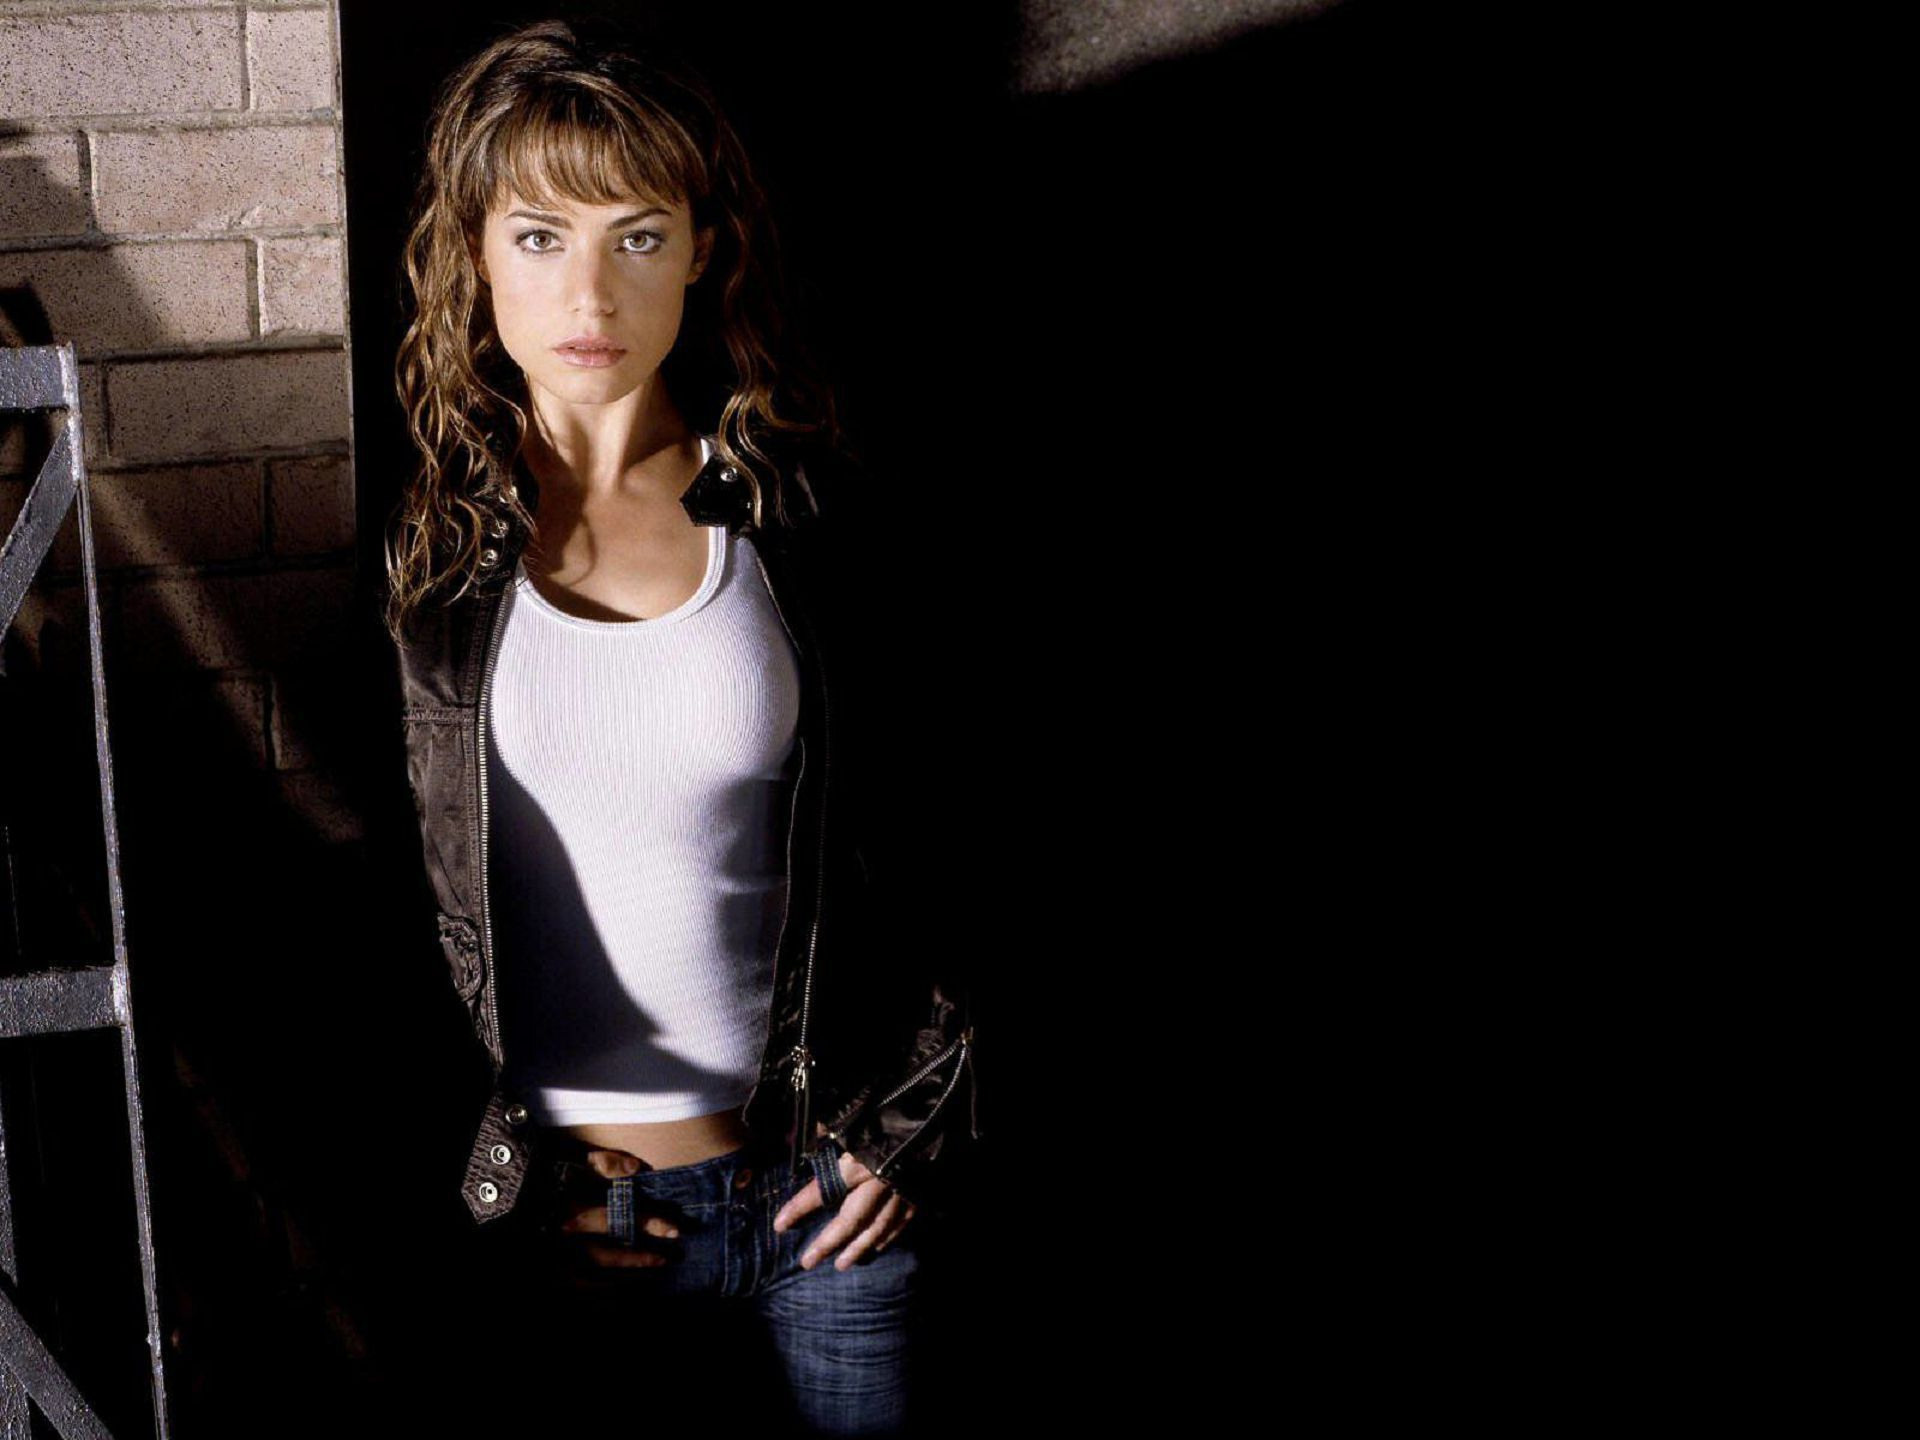 erica durance computer wallpaper - photo #3